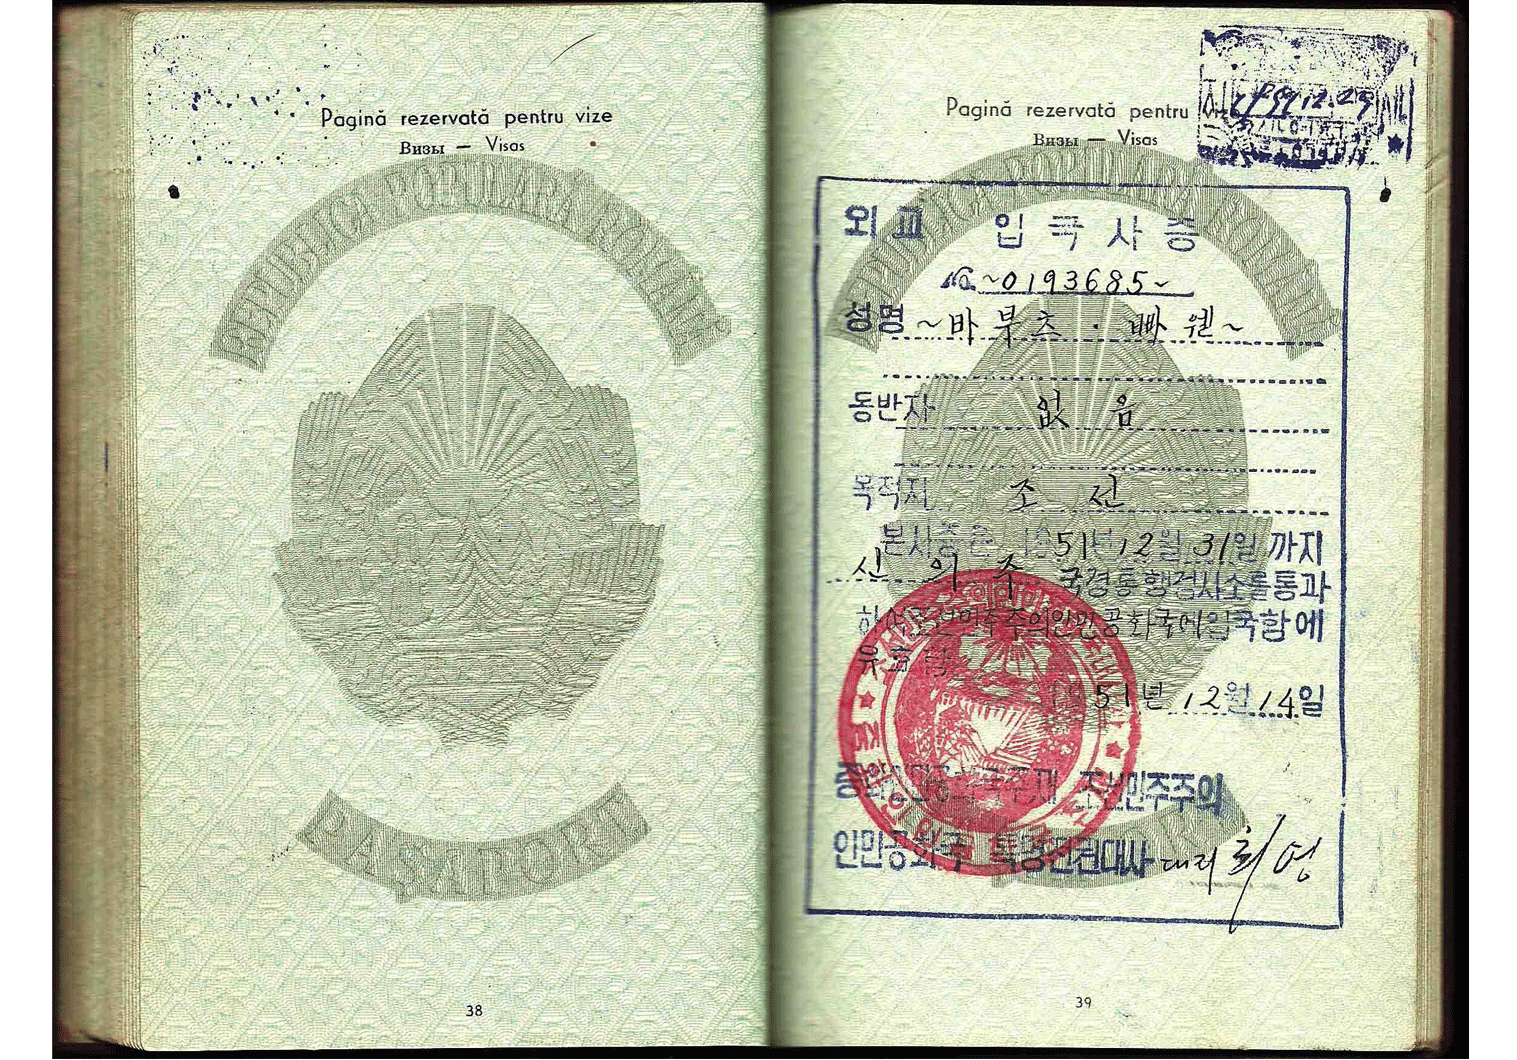 1951 North Korean diplomatic visa from Pyongyang